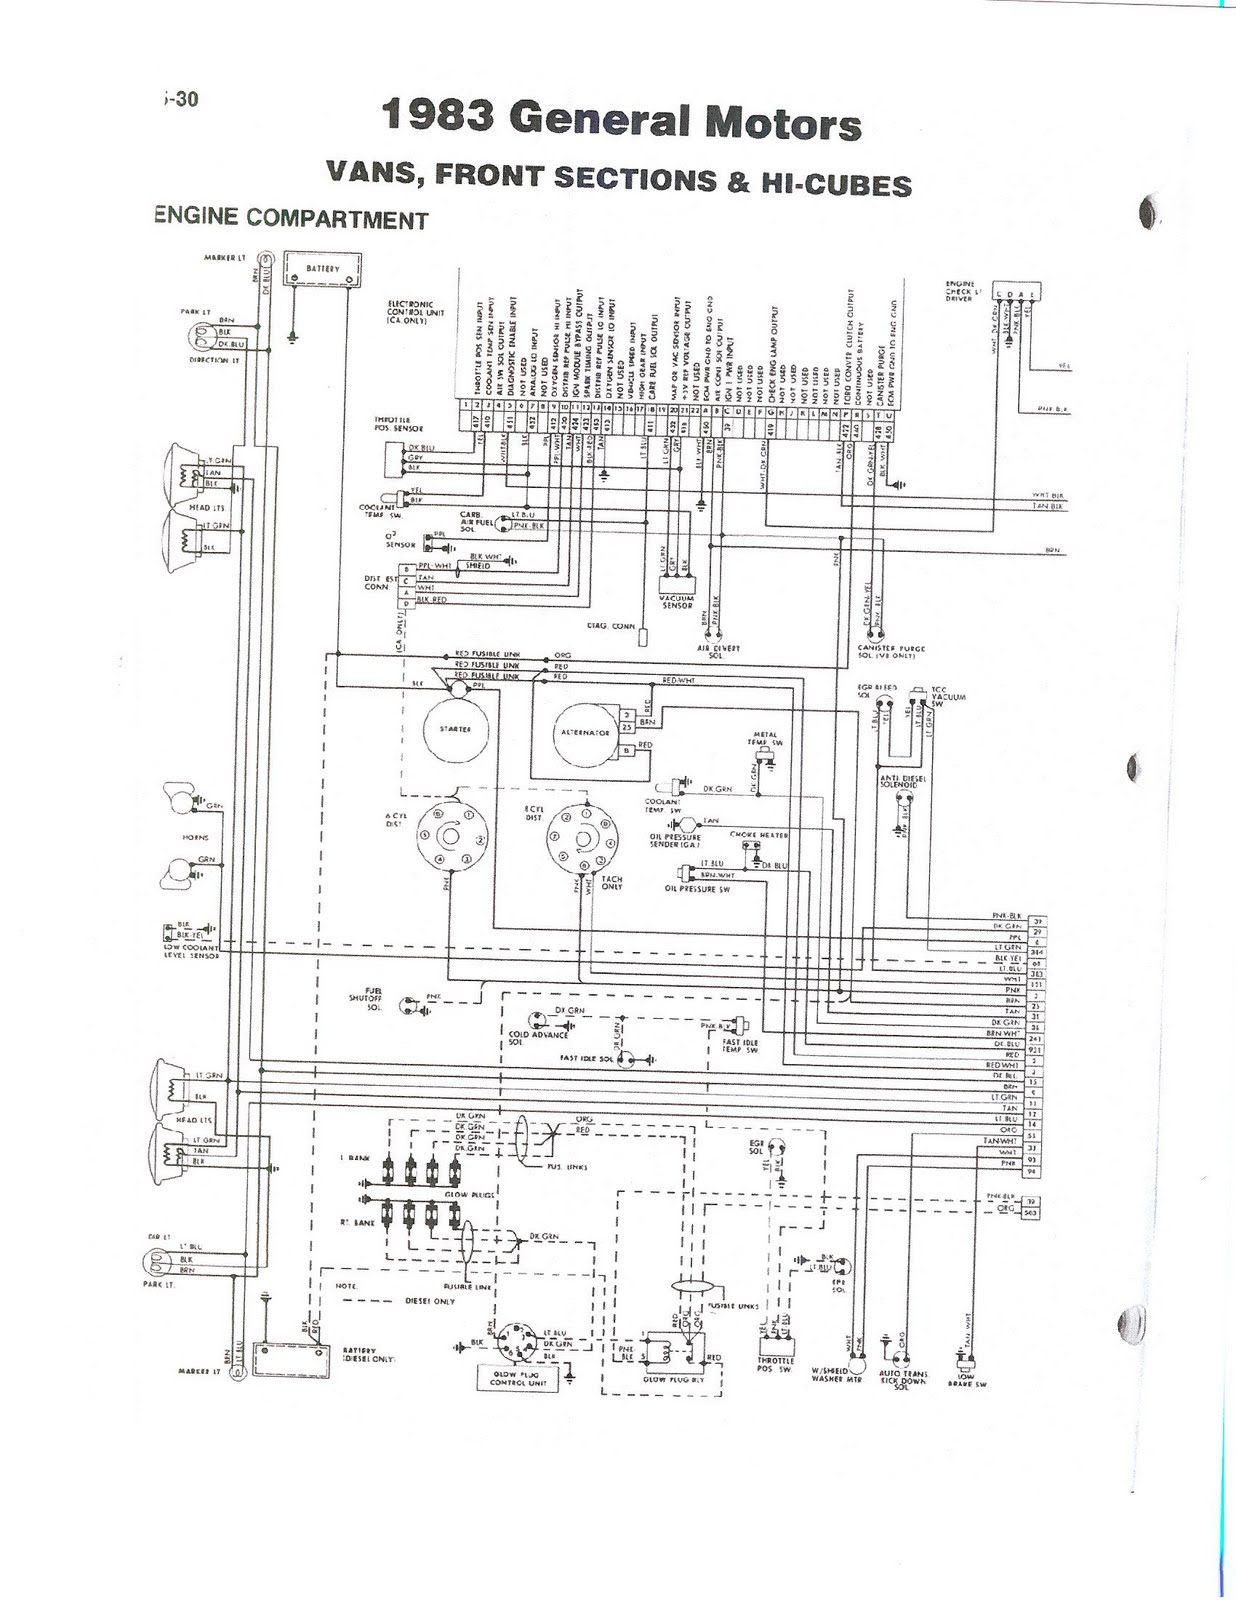 For A 1992 Gmc Vandura Wiring Diagram Library 1983 Volkswagen Vanagon Repair Manual Wireing 83 Gm Van Front Section Hi Cube